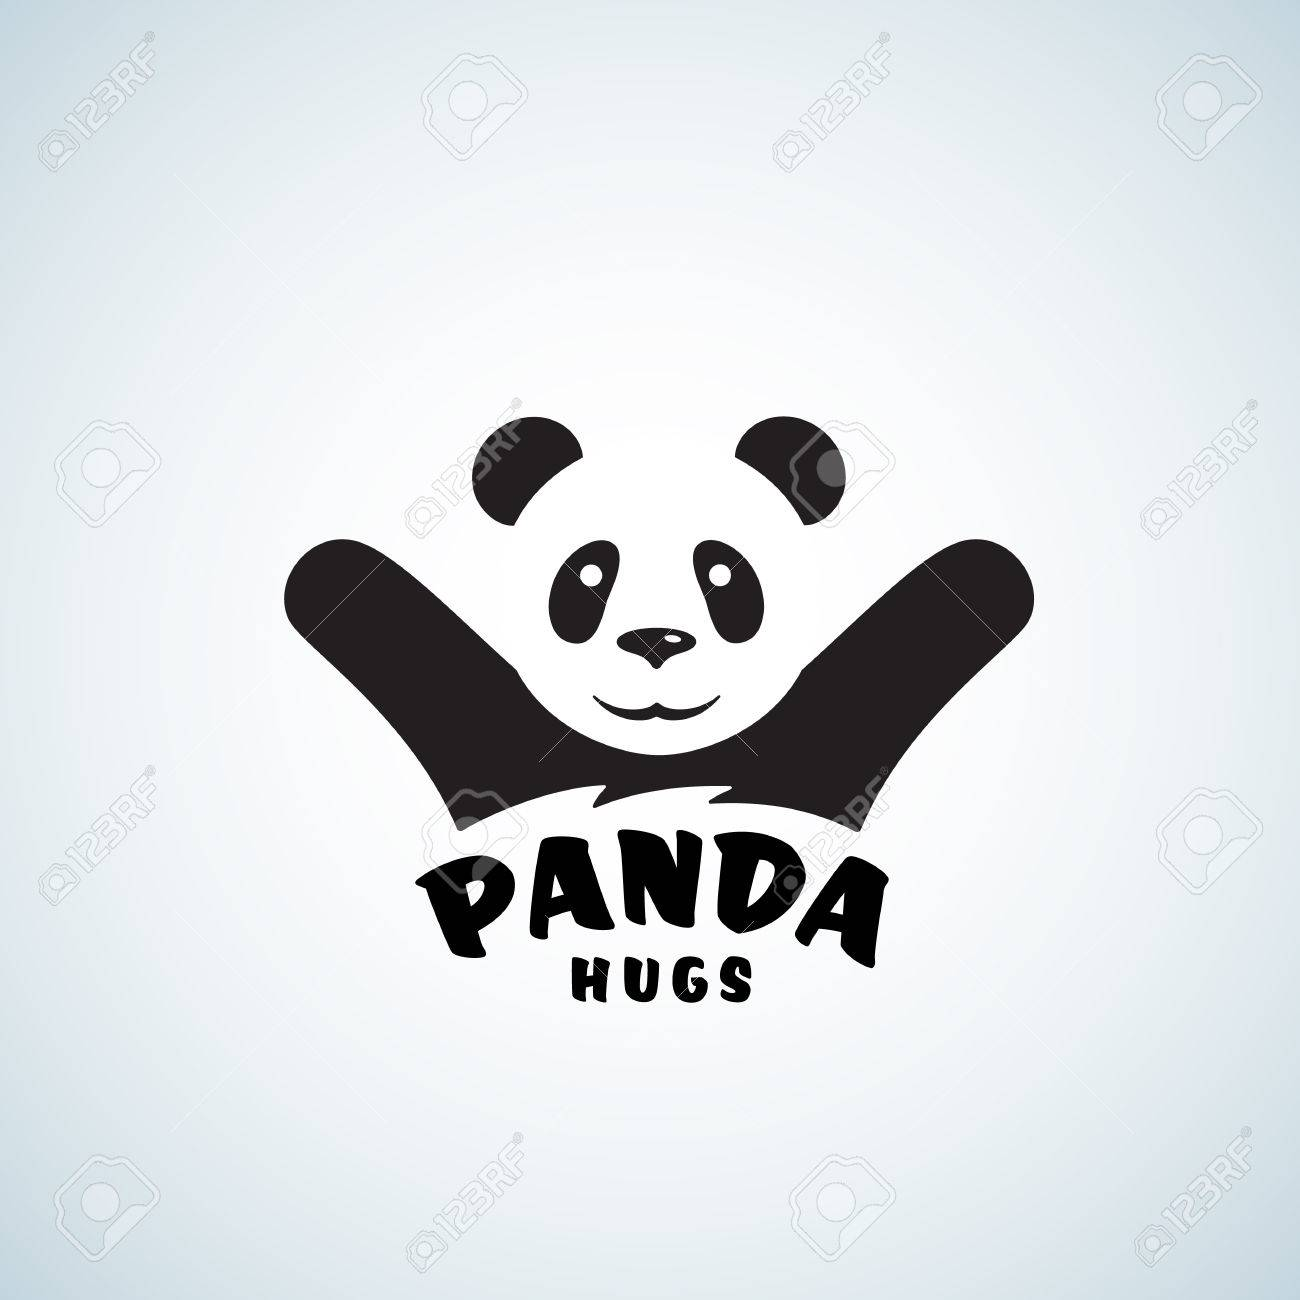 panda hugs abstract vector emblem or logo template funny bear illustration with negative space effect